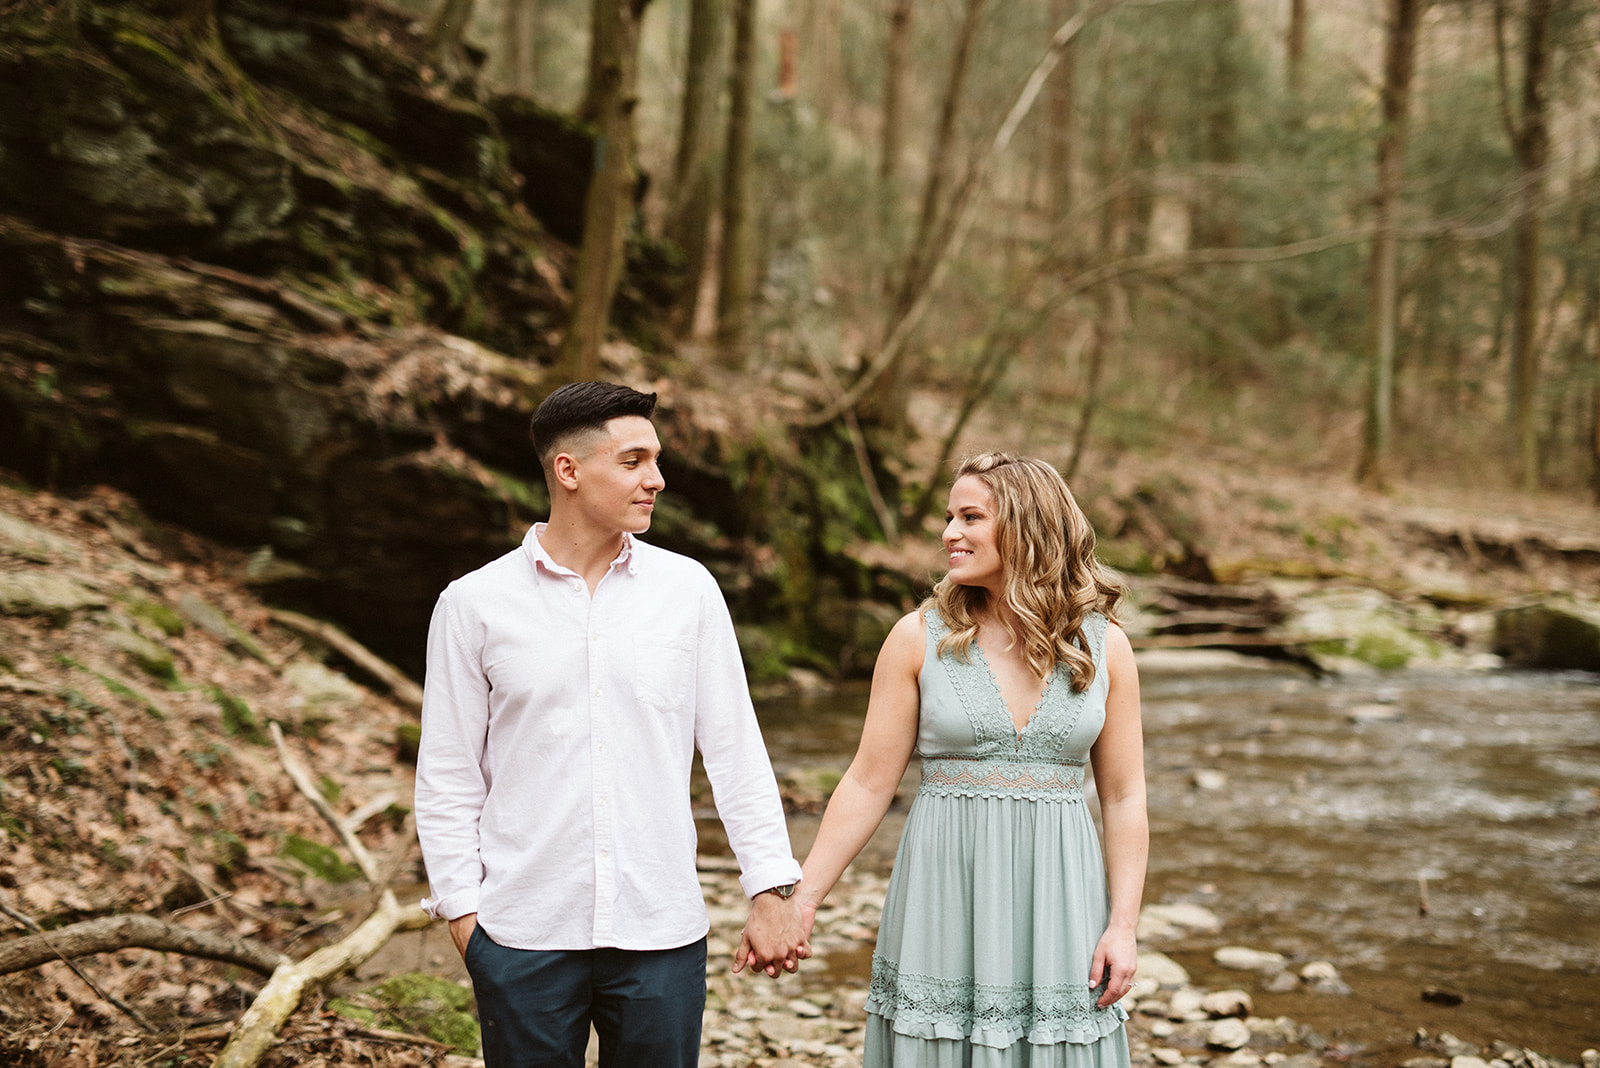 Adventurous engagement session in Tucquan Glen Nature Preserve, near Lancaster, Pennsylvania.